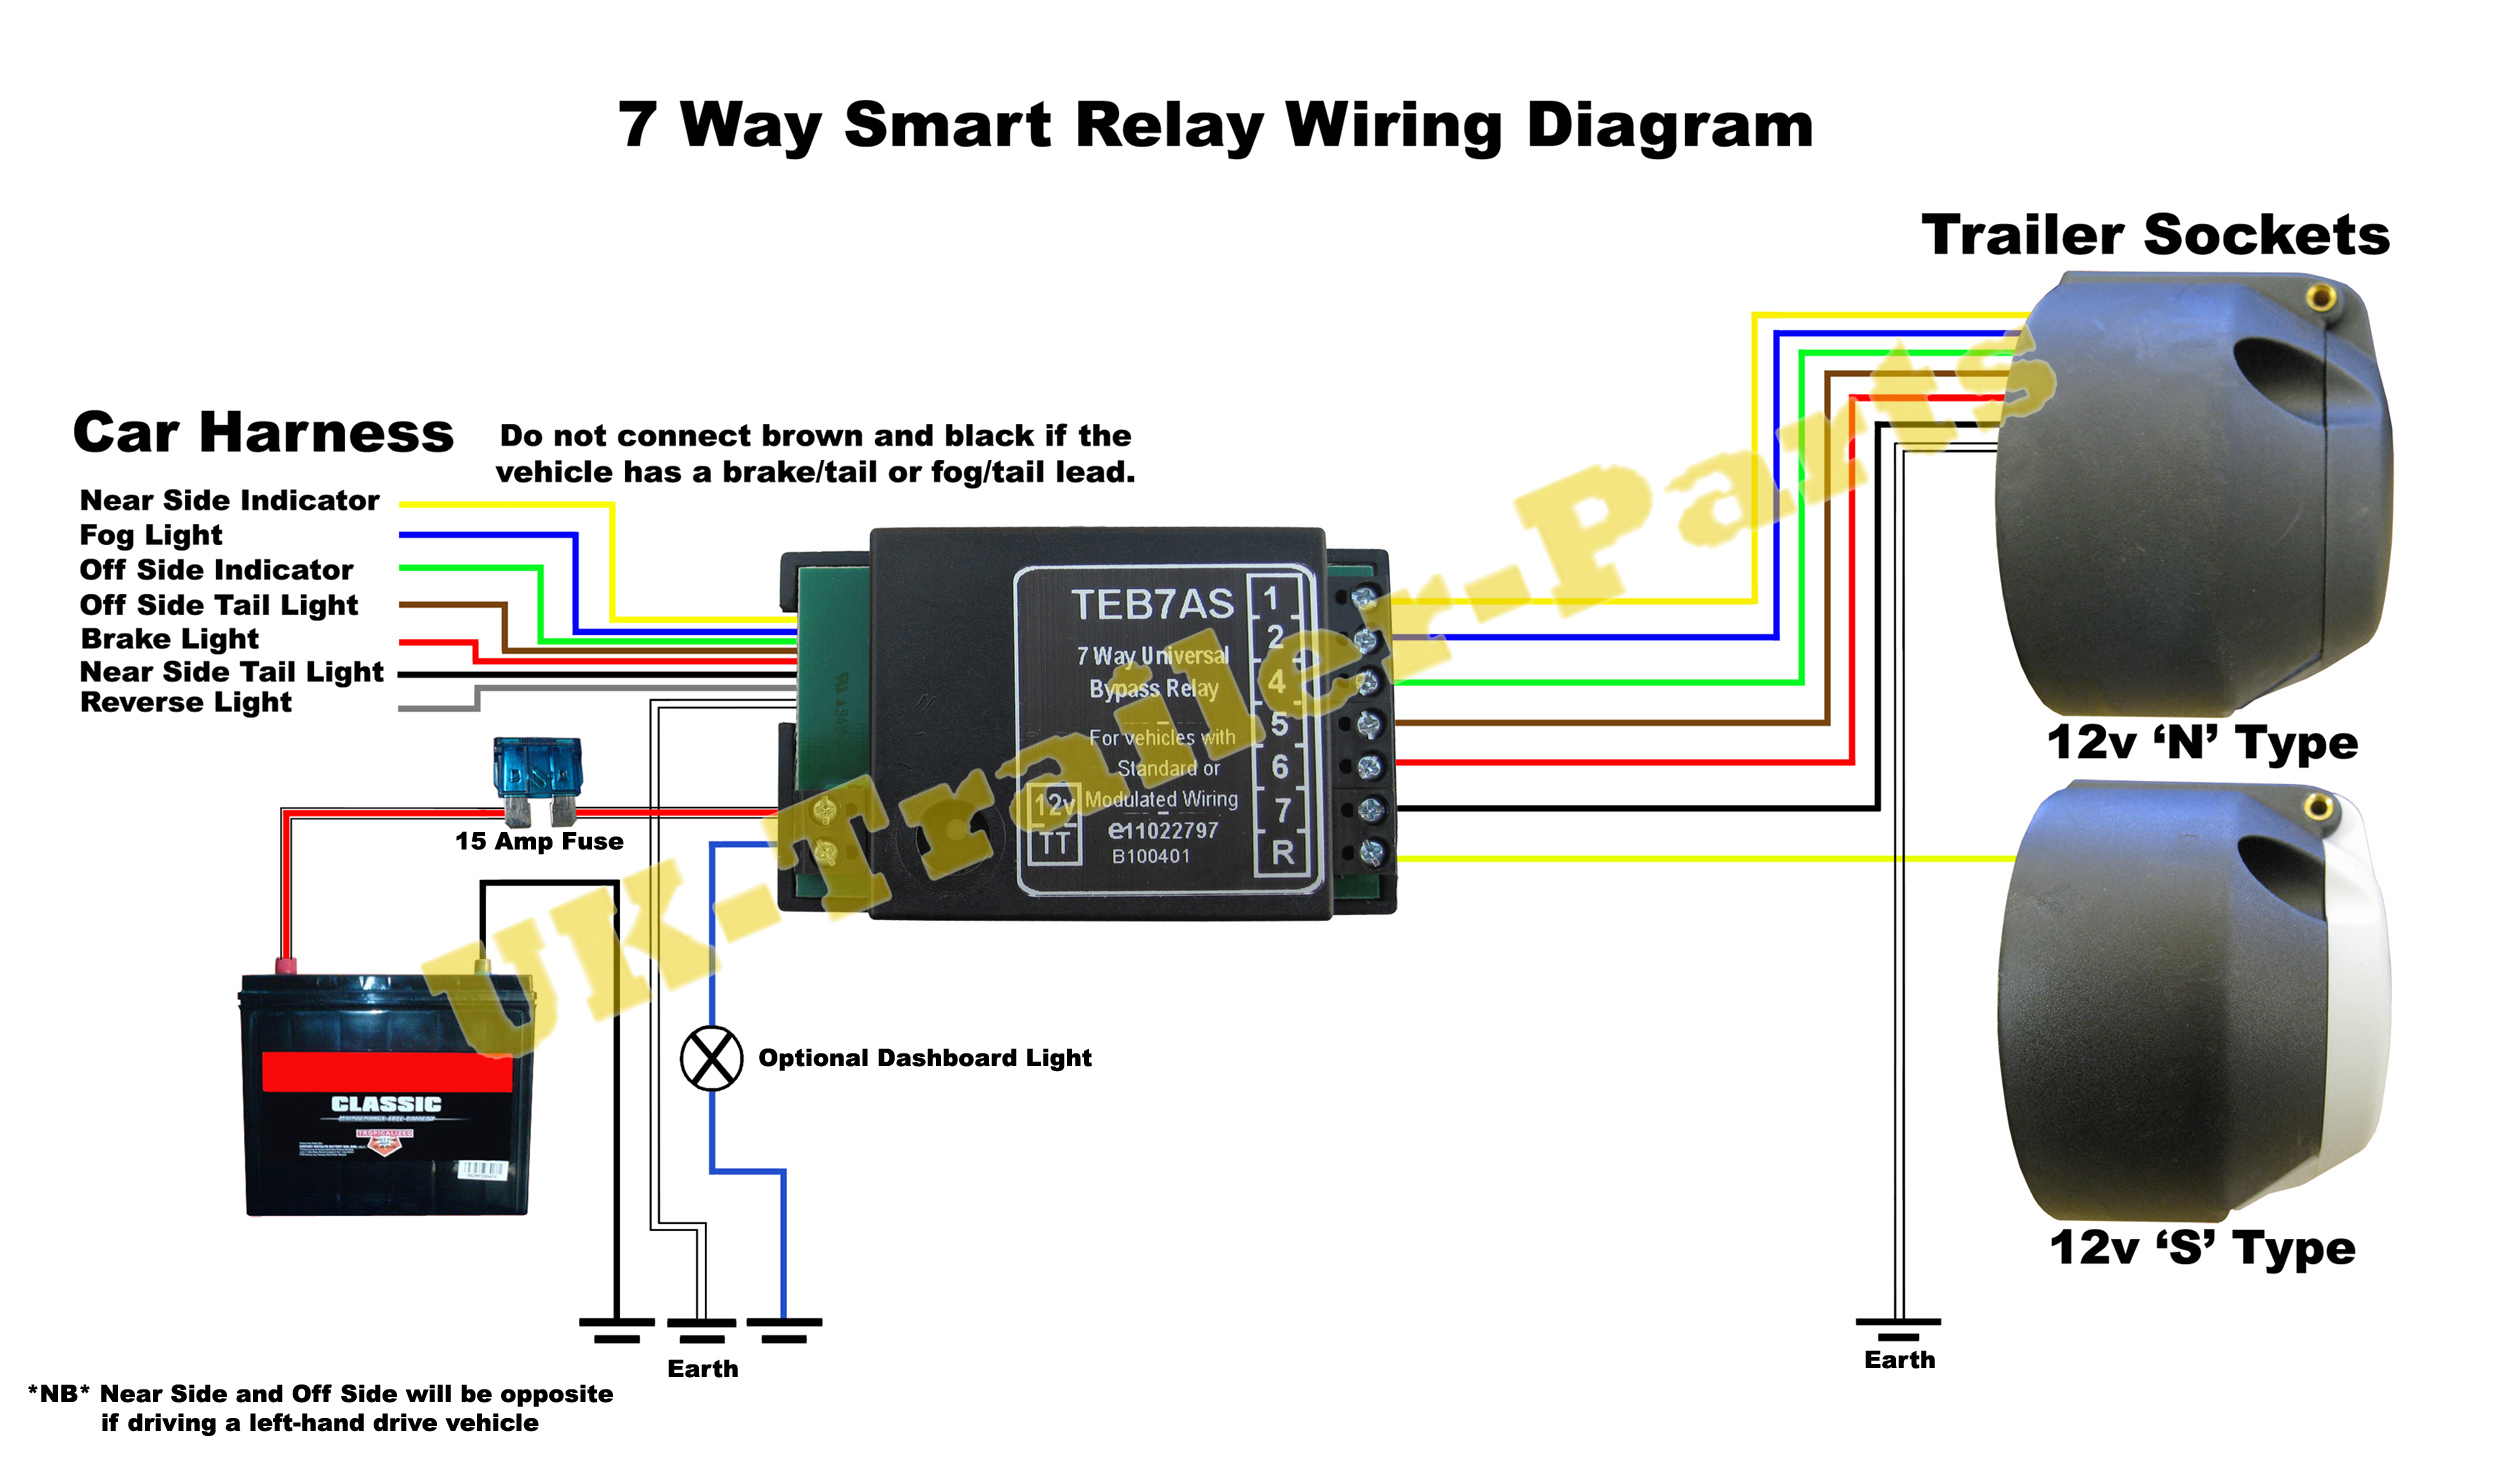 smart relay wiring diagram2 7 way universal bypass relay wiring diagram uk trailer parts bmw e60 towbar wiring diagram at sewacar.co